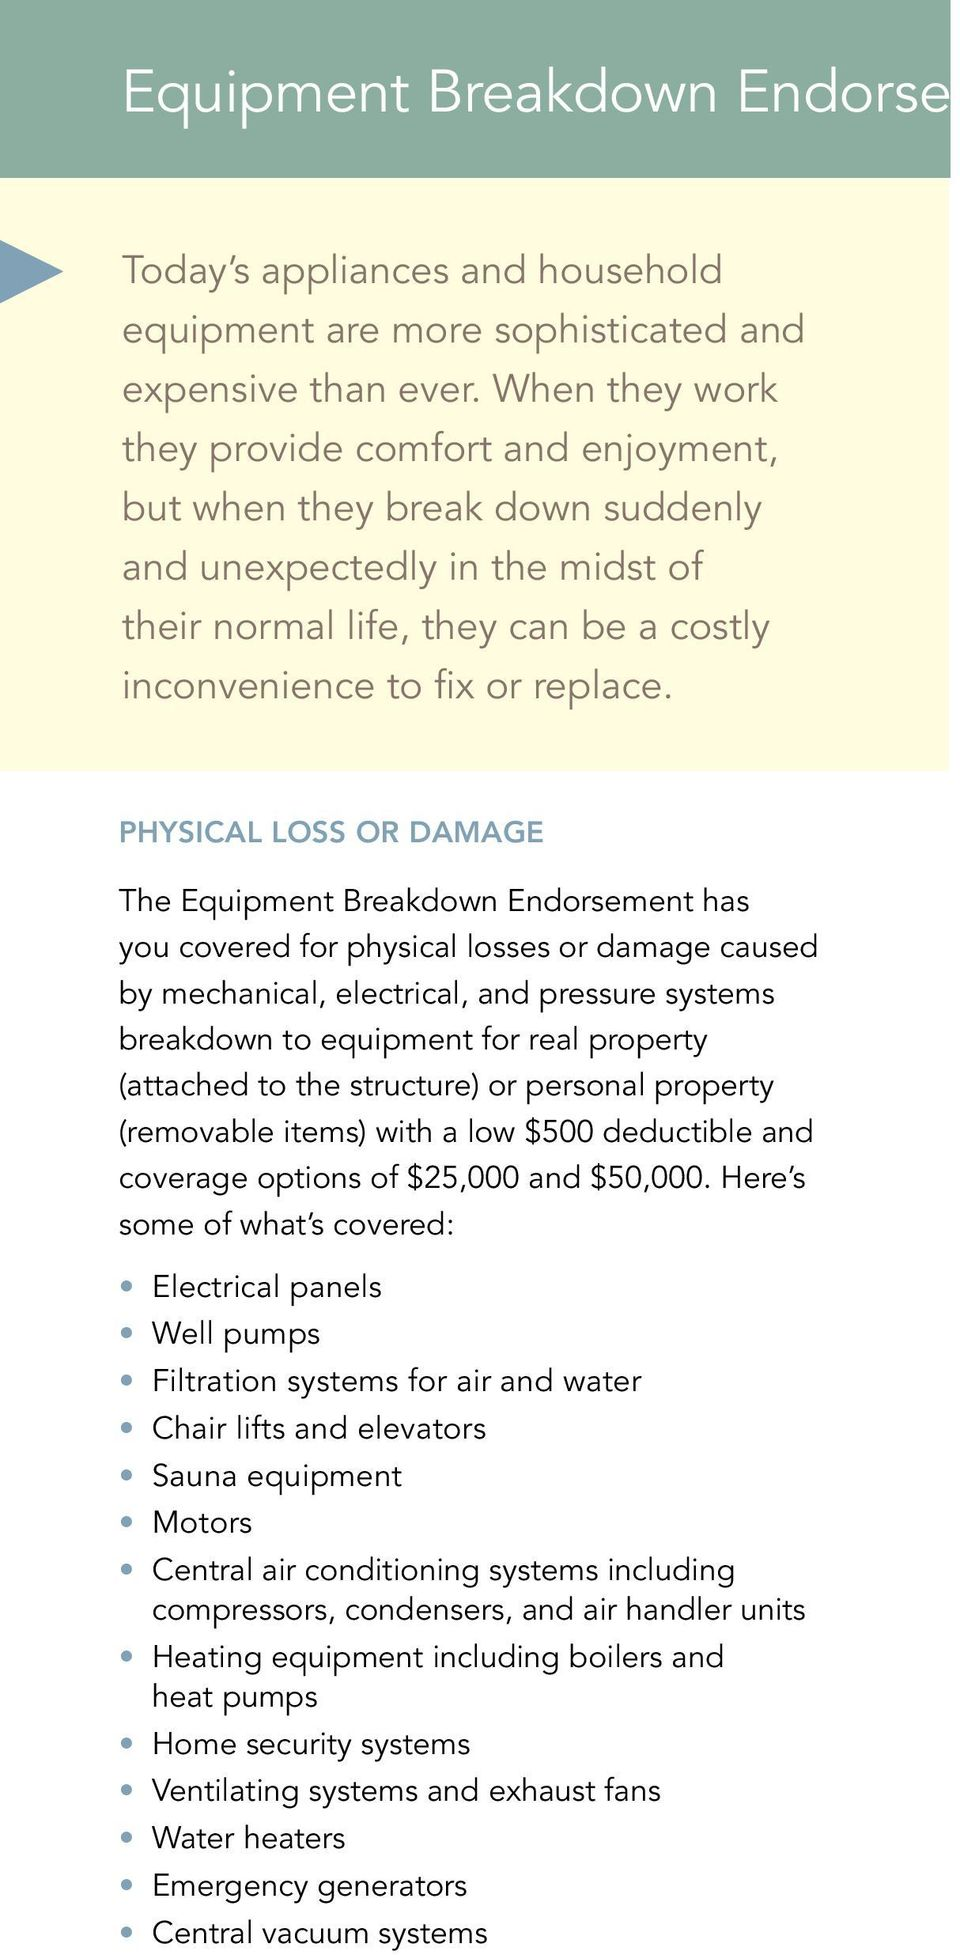 Physical Loss or Damage The Equipment Breakdown Endorsement has you covered for physical losses or damage caused by mechanical, electrical, and pressure systems breakdown to equipment for real